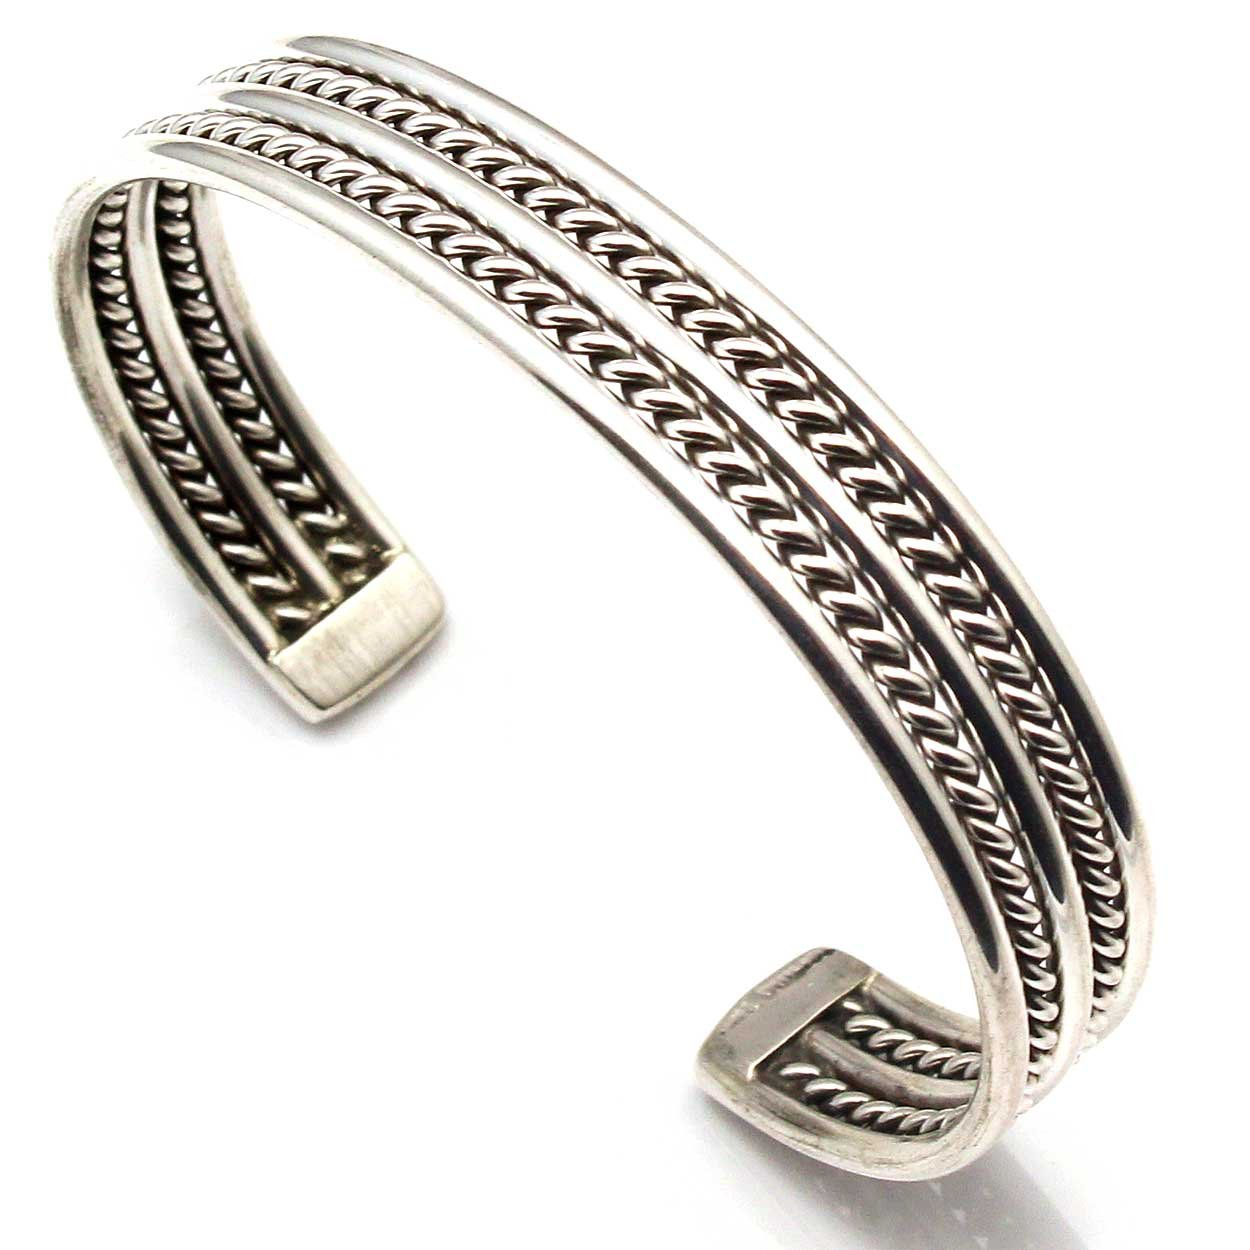 Handcrafted Navajo Sterling Silver Twist Wire Bracelet by E. Tahe